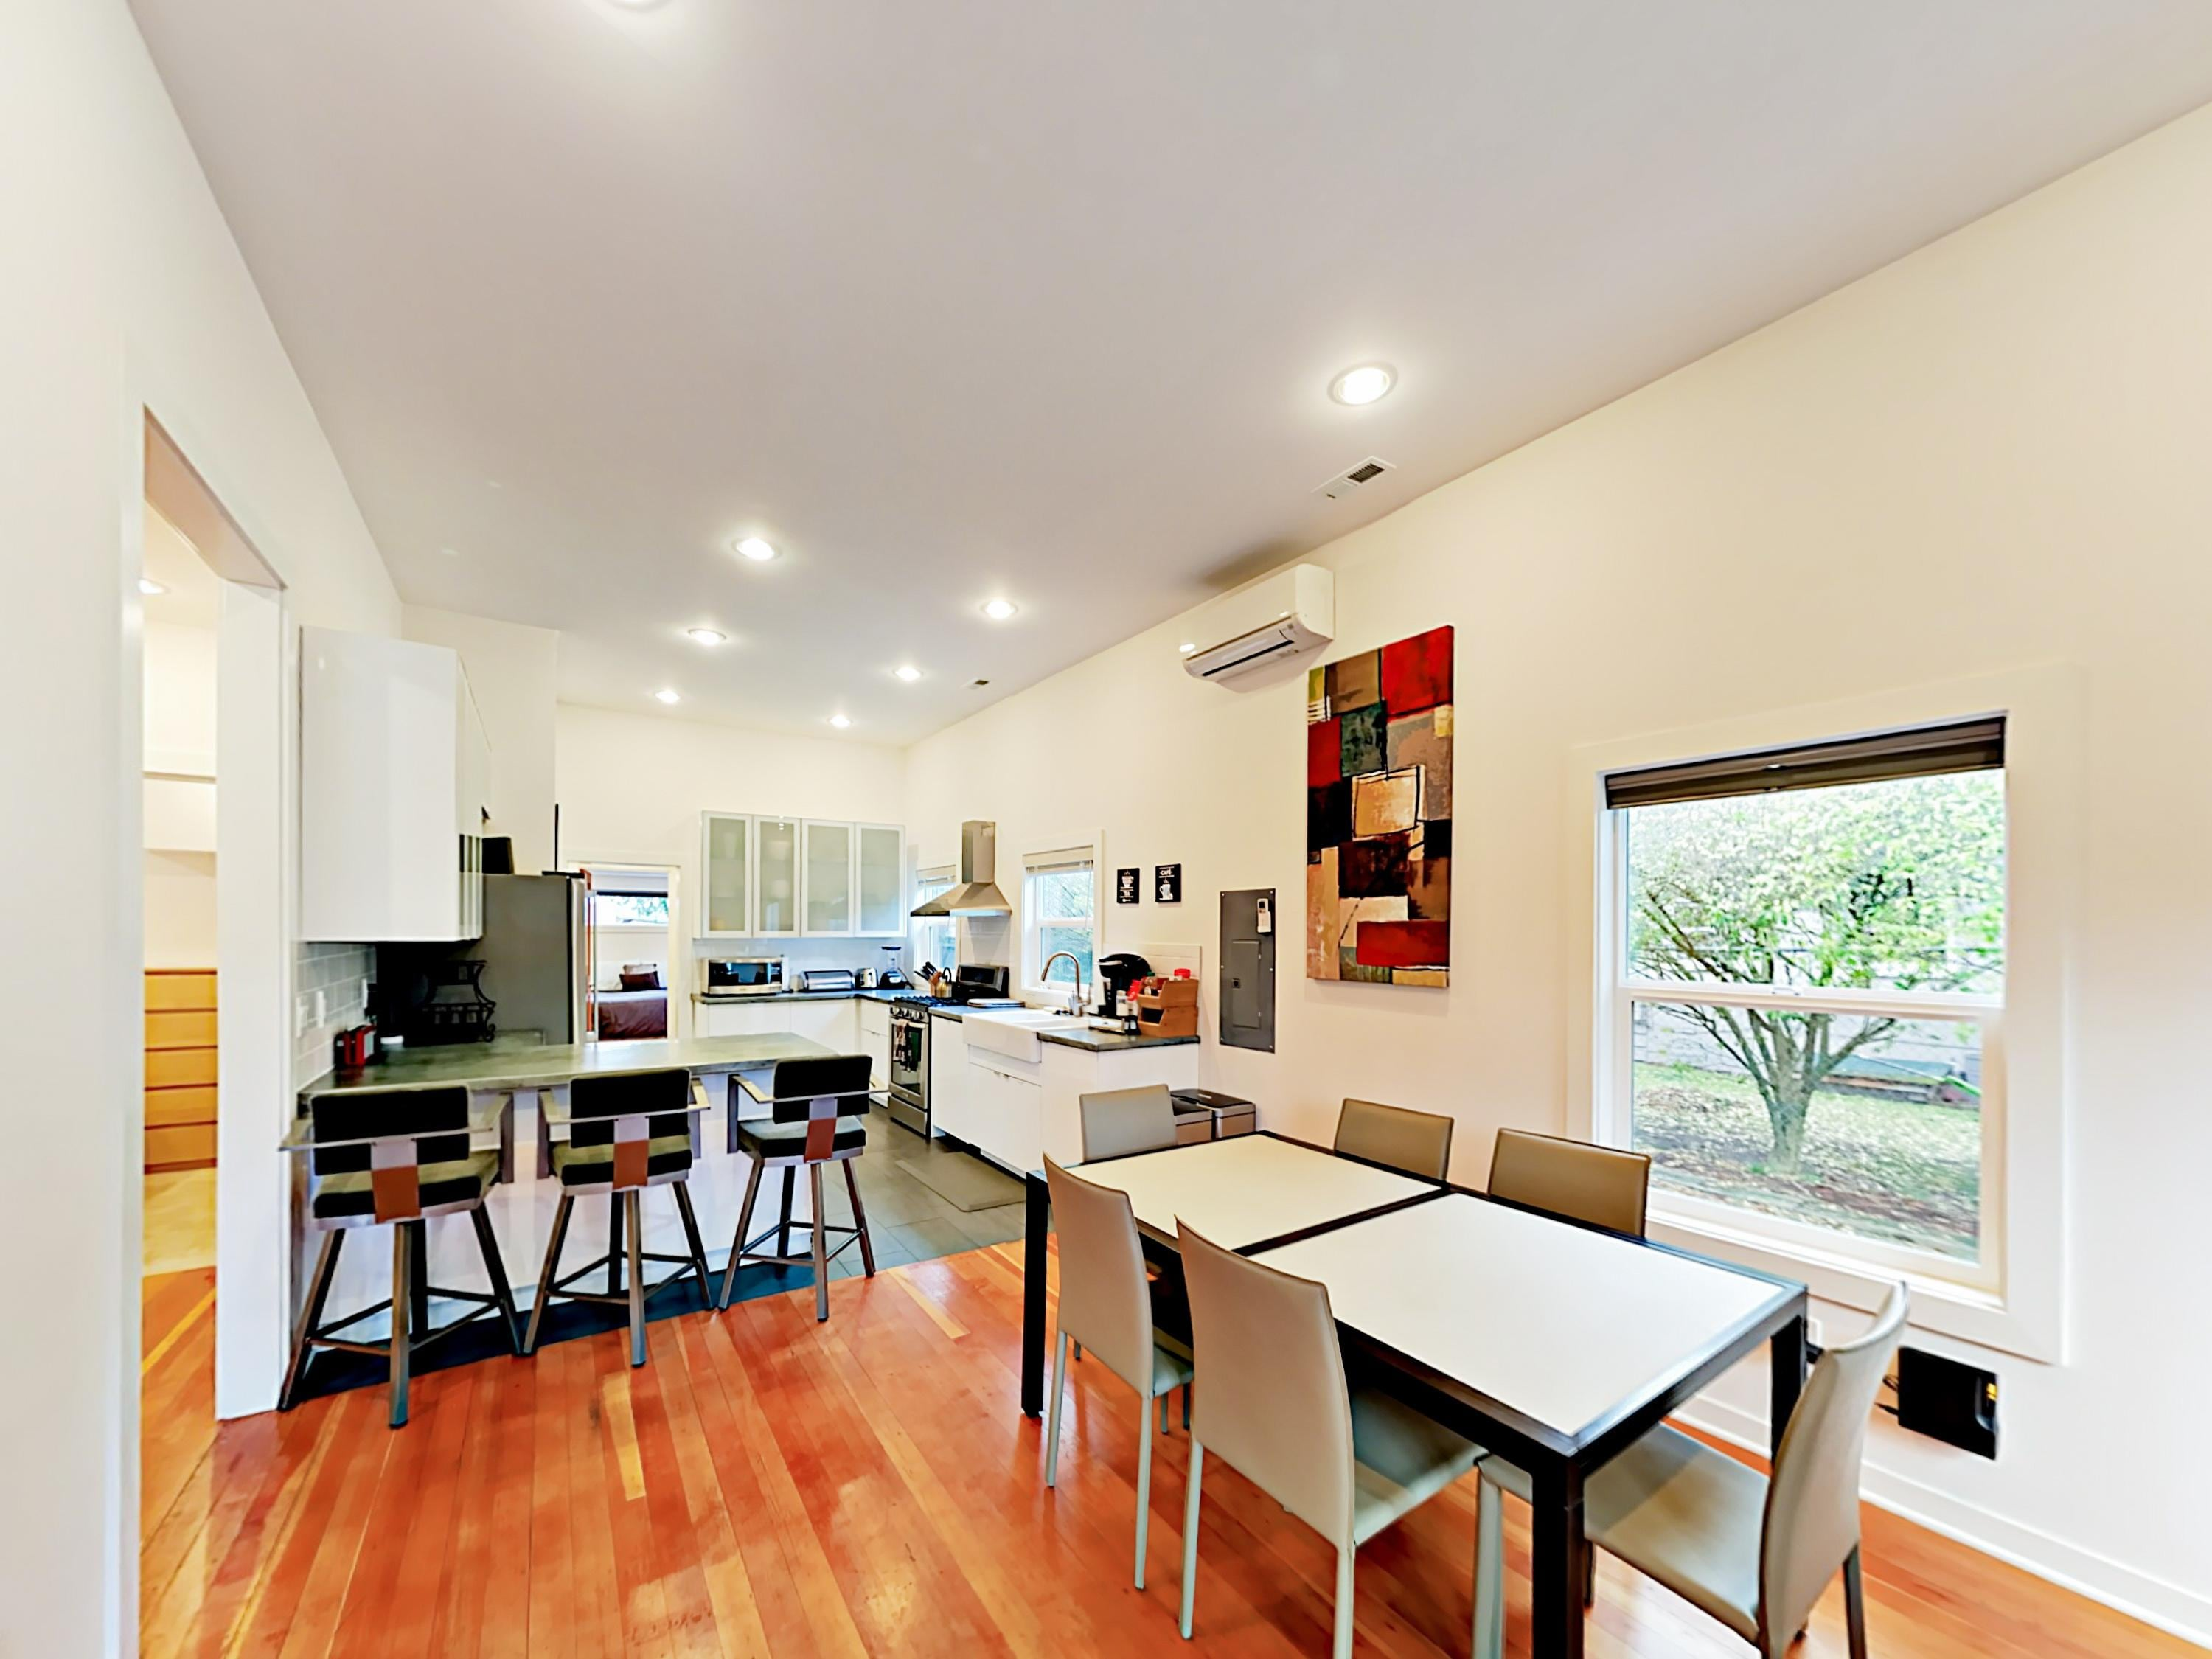 The open-concept living, dining, and kitchen is detailed with beautiful hardwood floors.